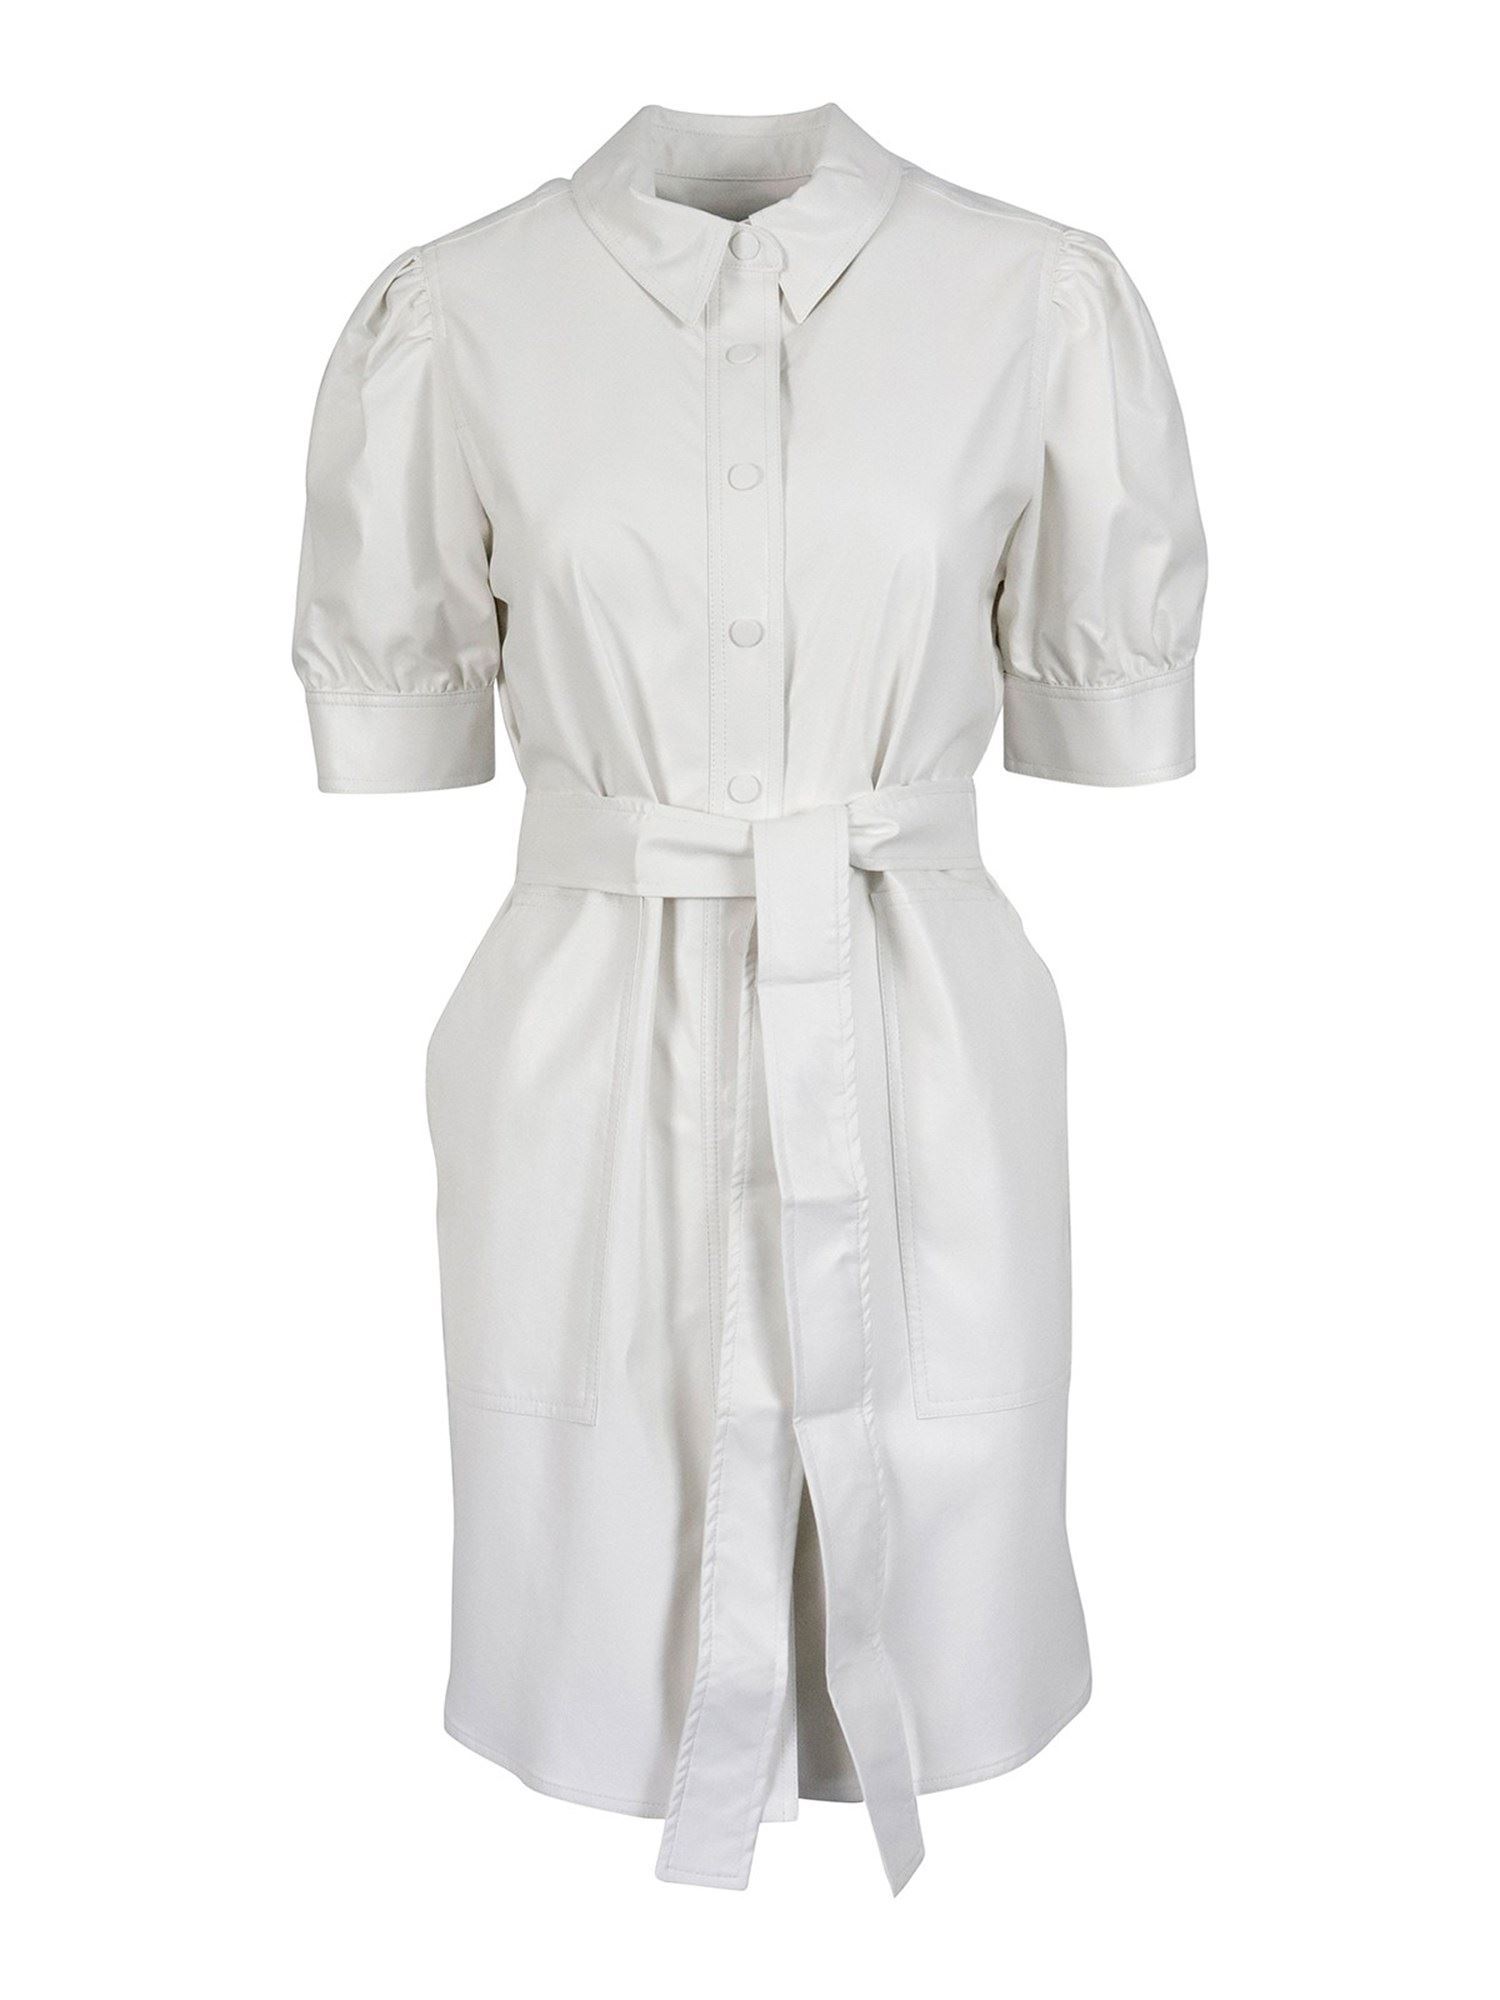 Twinset Dresses COATED FABRIC SHIRT DRESS IN WHITE